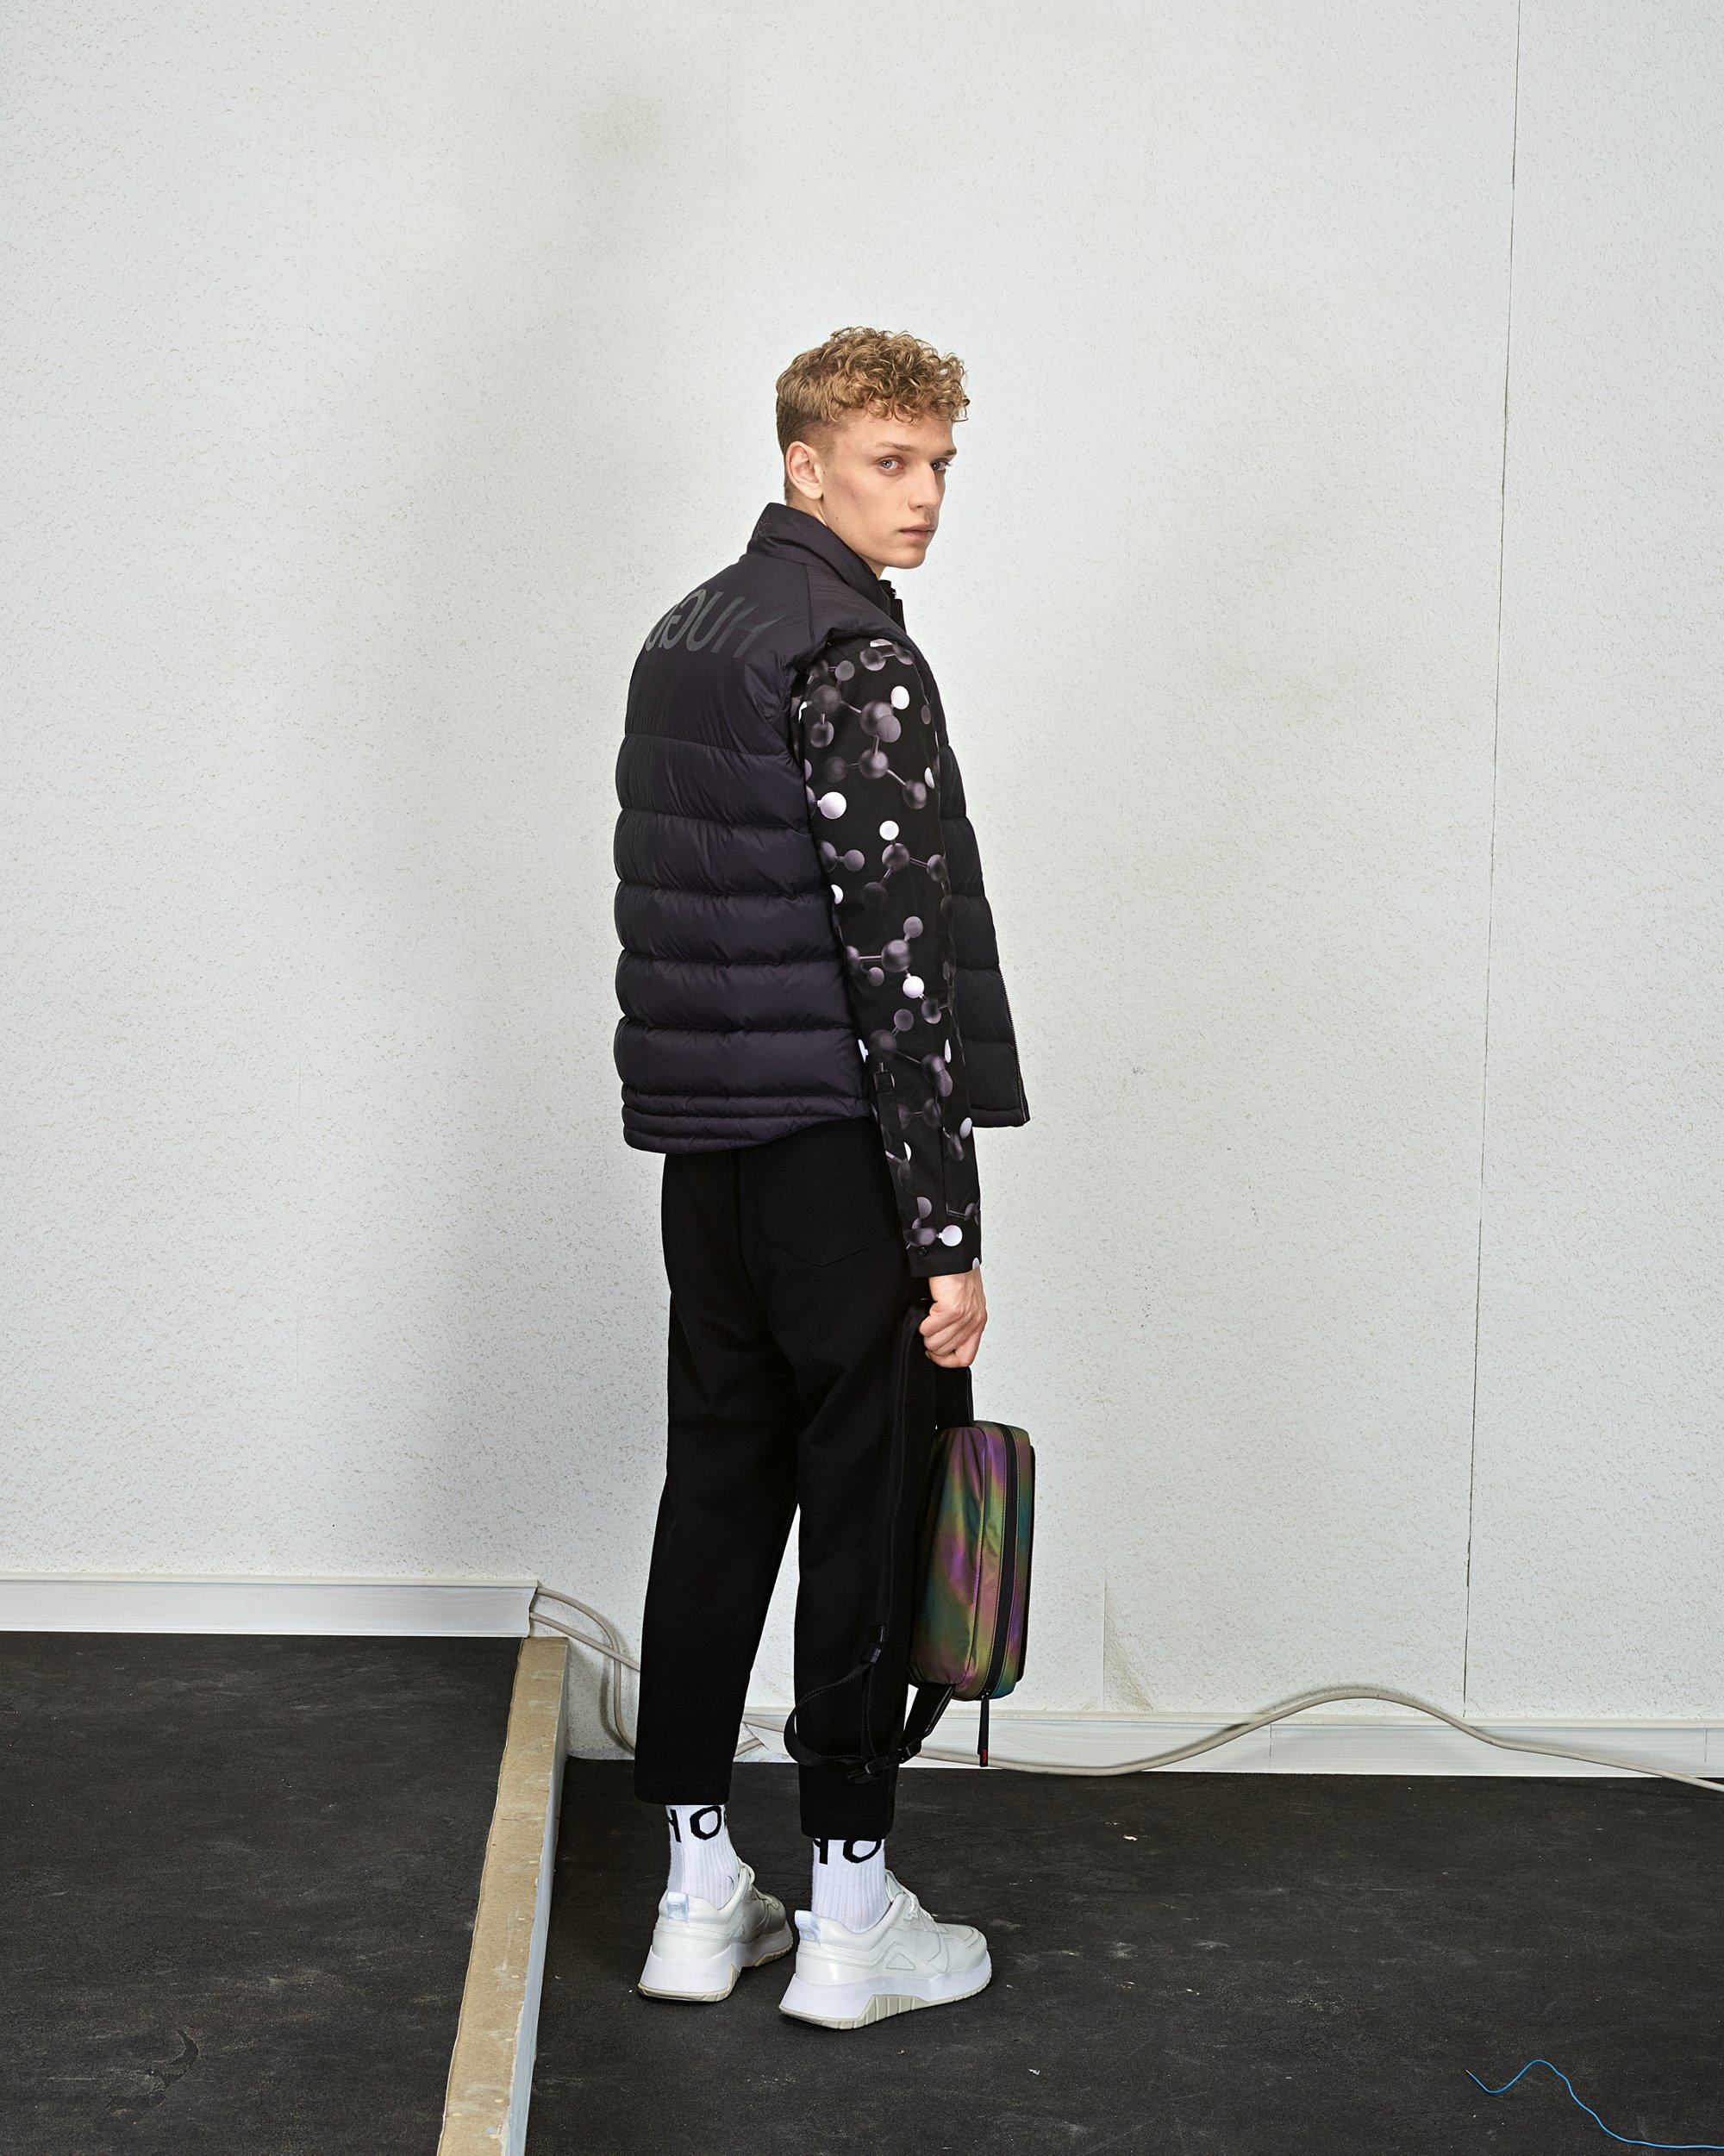 Cheap Designer Clothes S | Designer Clothes And Accessories Hugo Boss Official Online Store